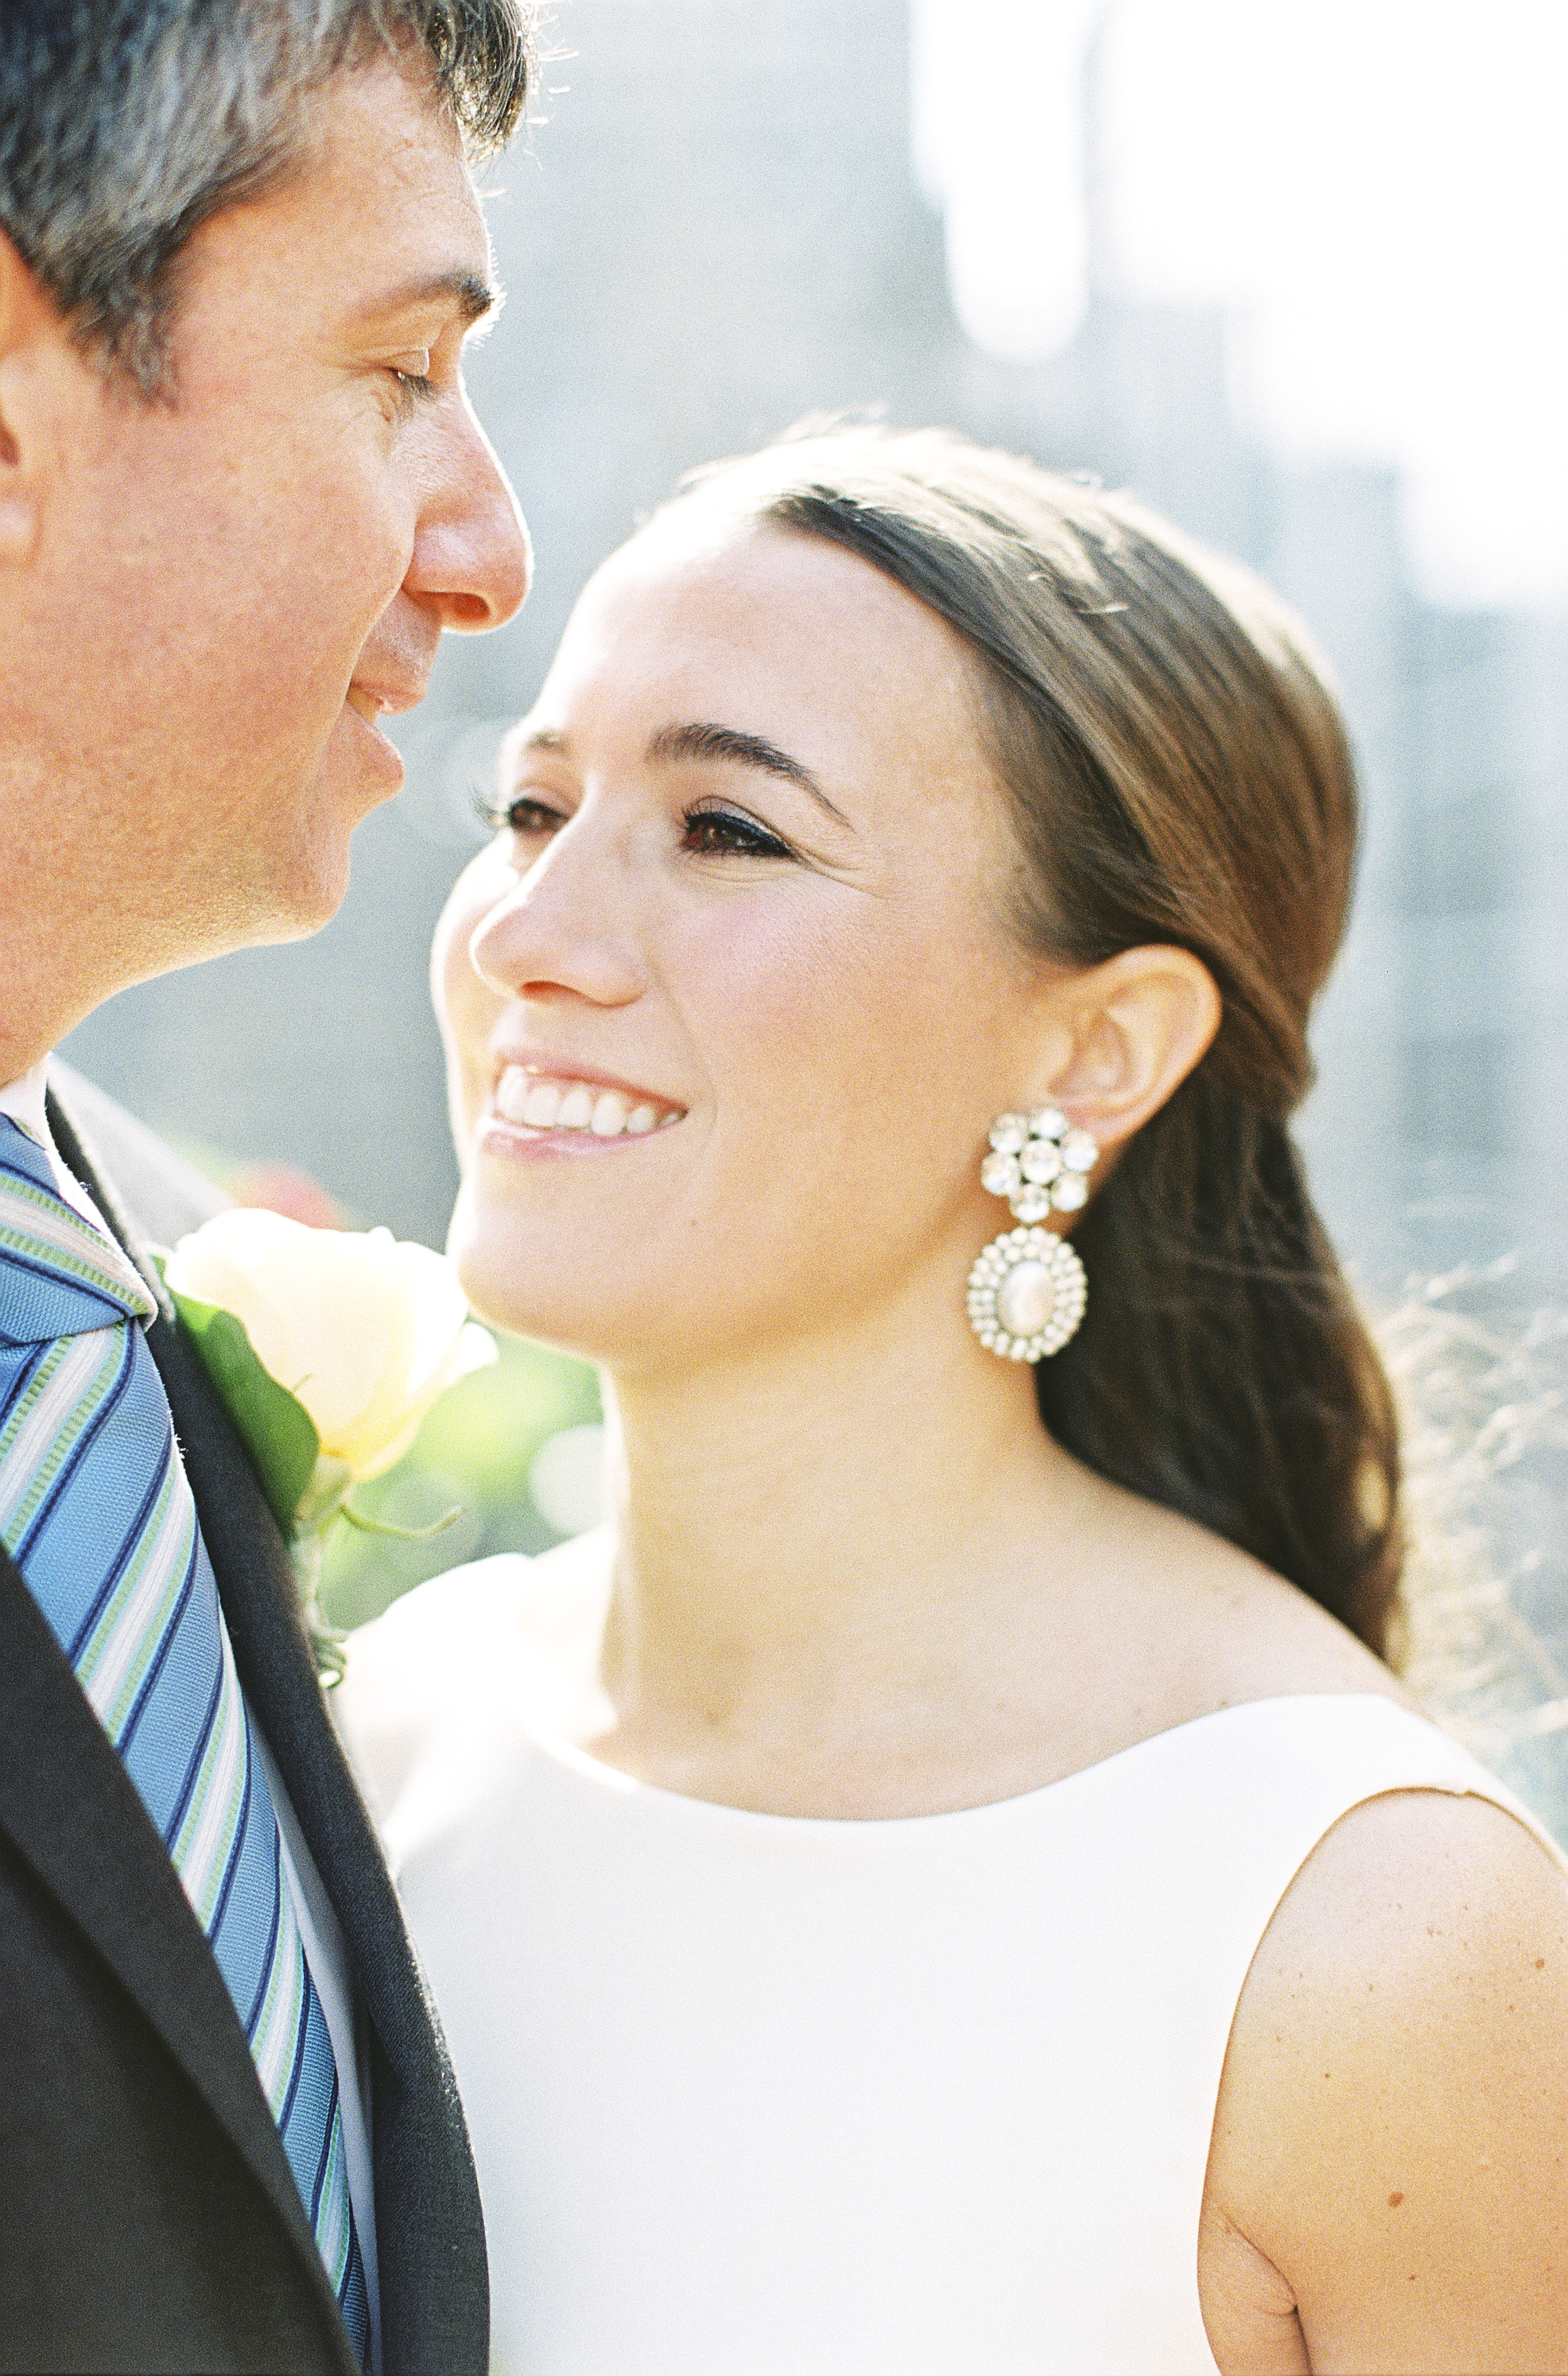 Custom Earrings made from vintage components. Photo Credit: Alicia Swedenborg